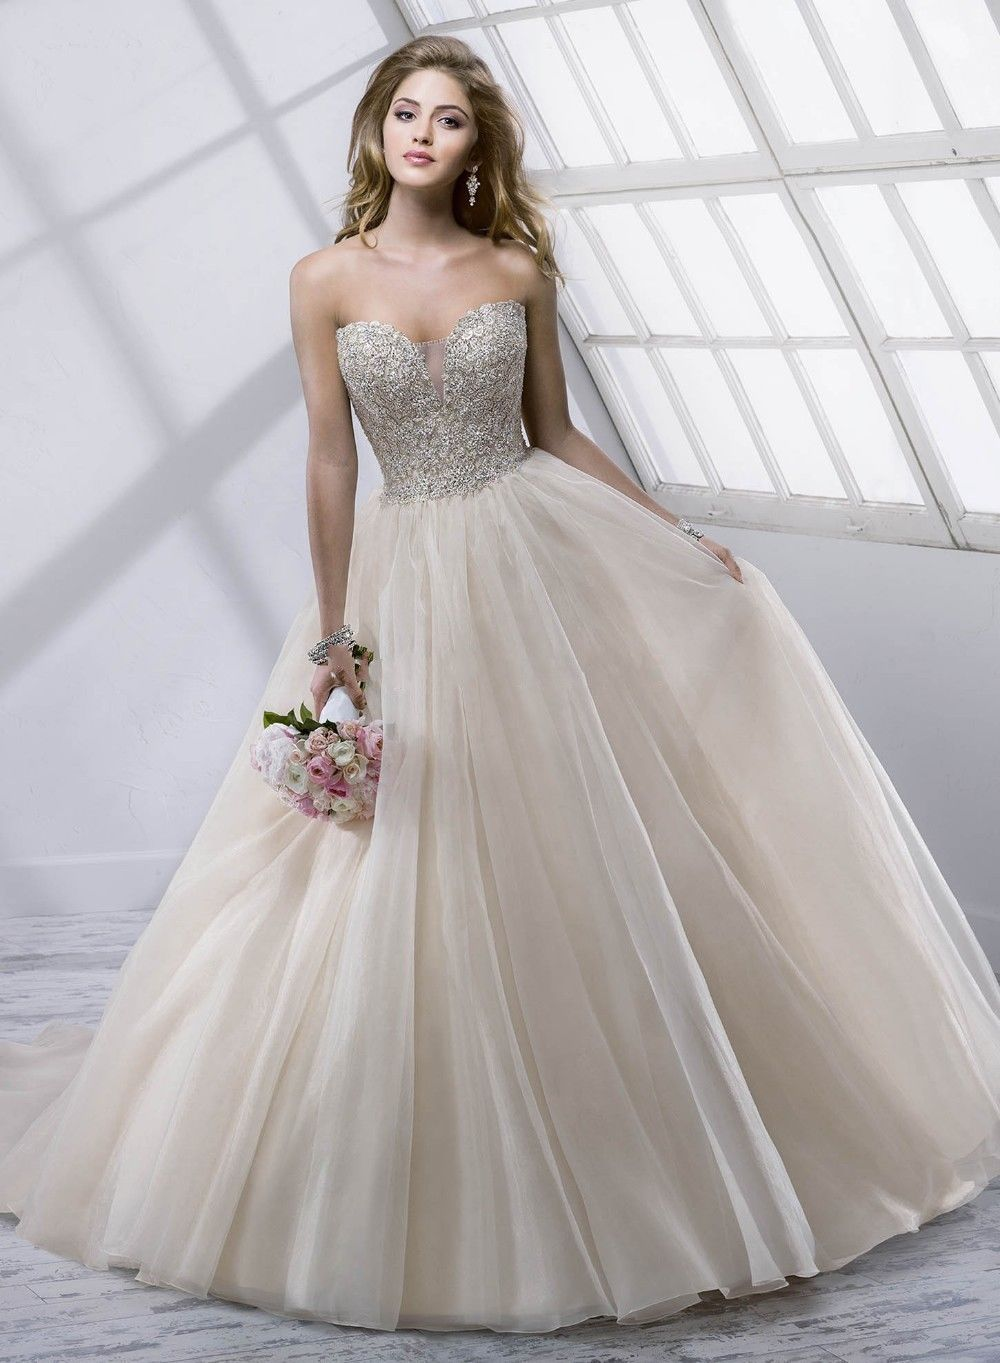 sweetheart ball gown so nicely wedding dress gown bride custom all ...